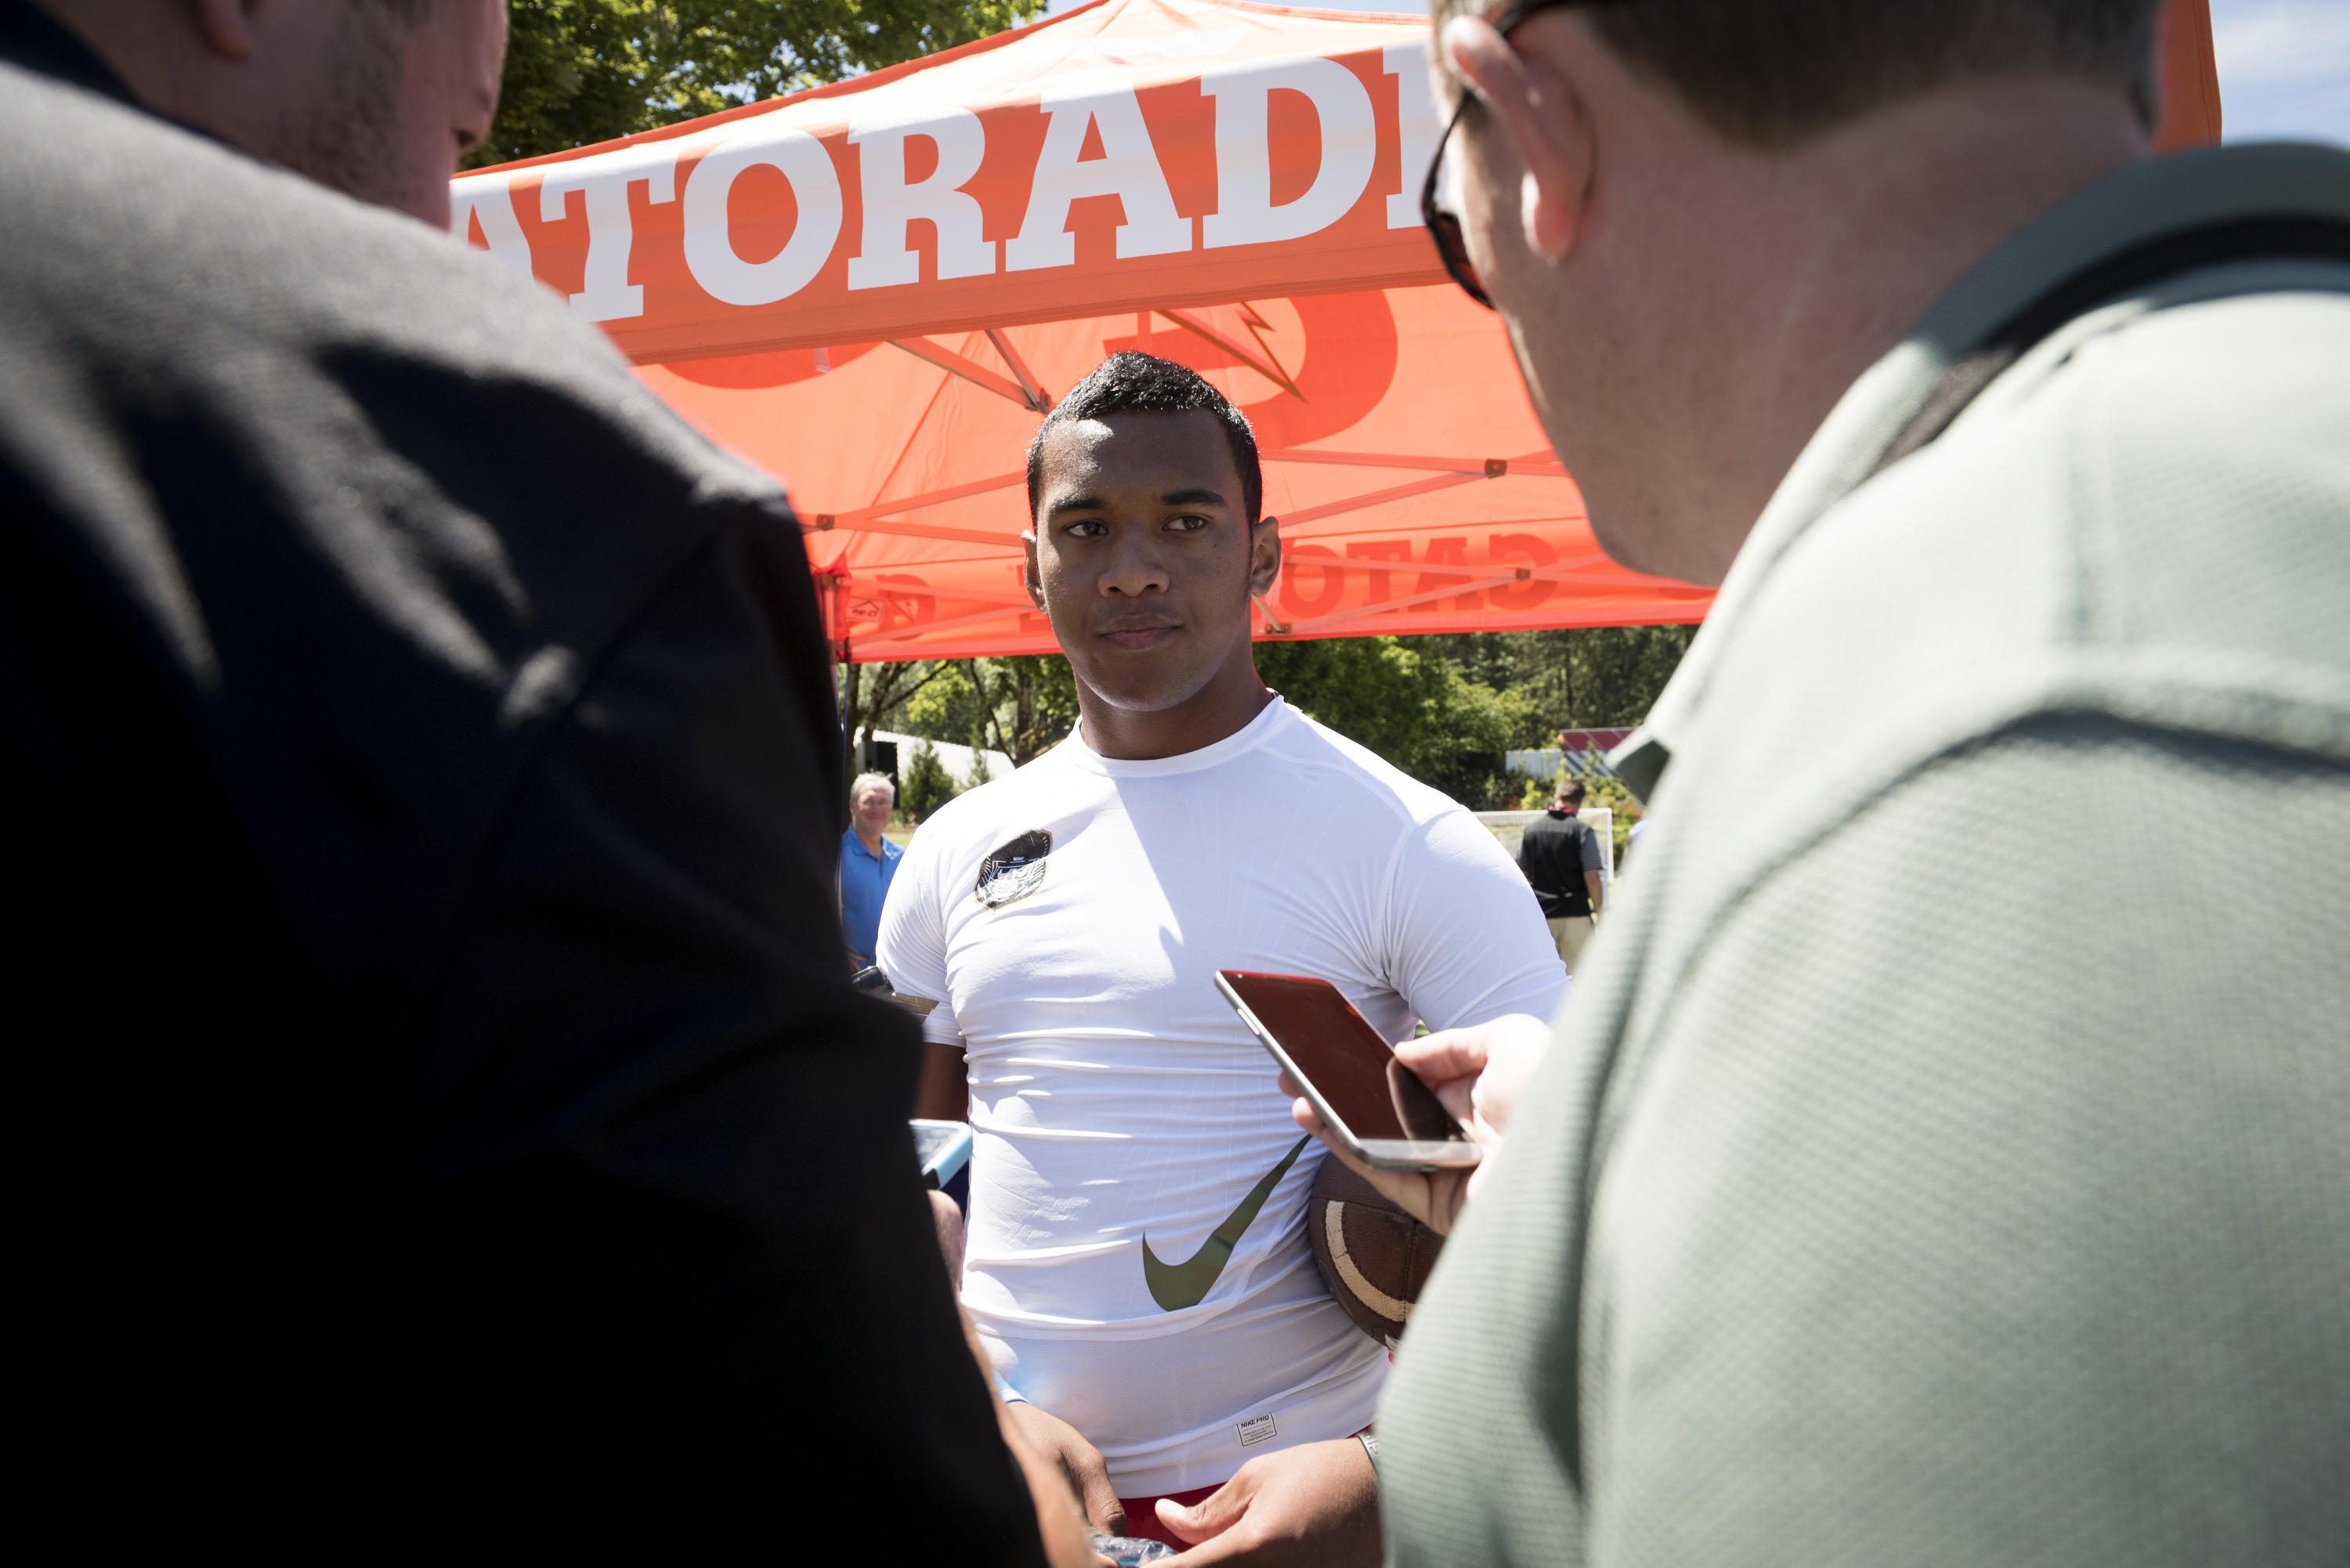 July 6, 2016 -- Beaverton, OR, U.S.A -- Quarterback Tua Tagovailoa of St. Louis (Hawaii) talks to the media at The Opening and Elite 11 high school football camp at Nike headquarters in Oregon. -- Photo by Troy Wayrynen-USA TODAY Sports Images, Gannett ORG XMIT: US 135130 opening/ elite 1 7/6/2016 [Via MerlinFTP Drop]